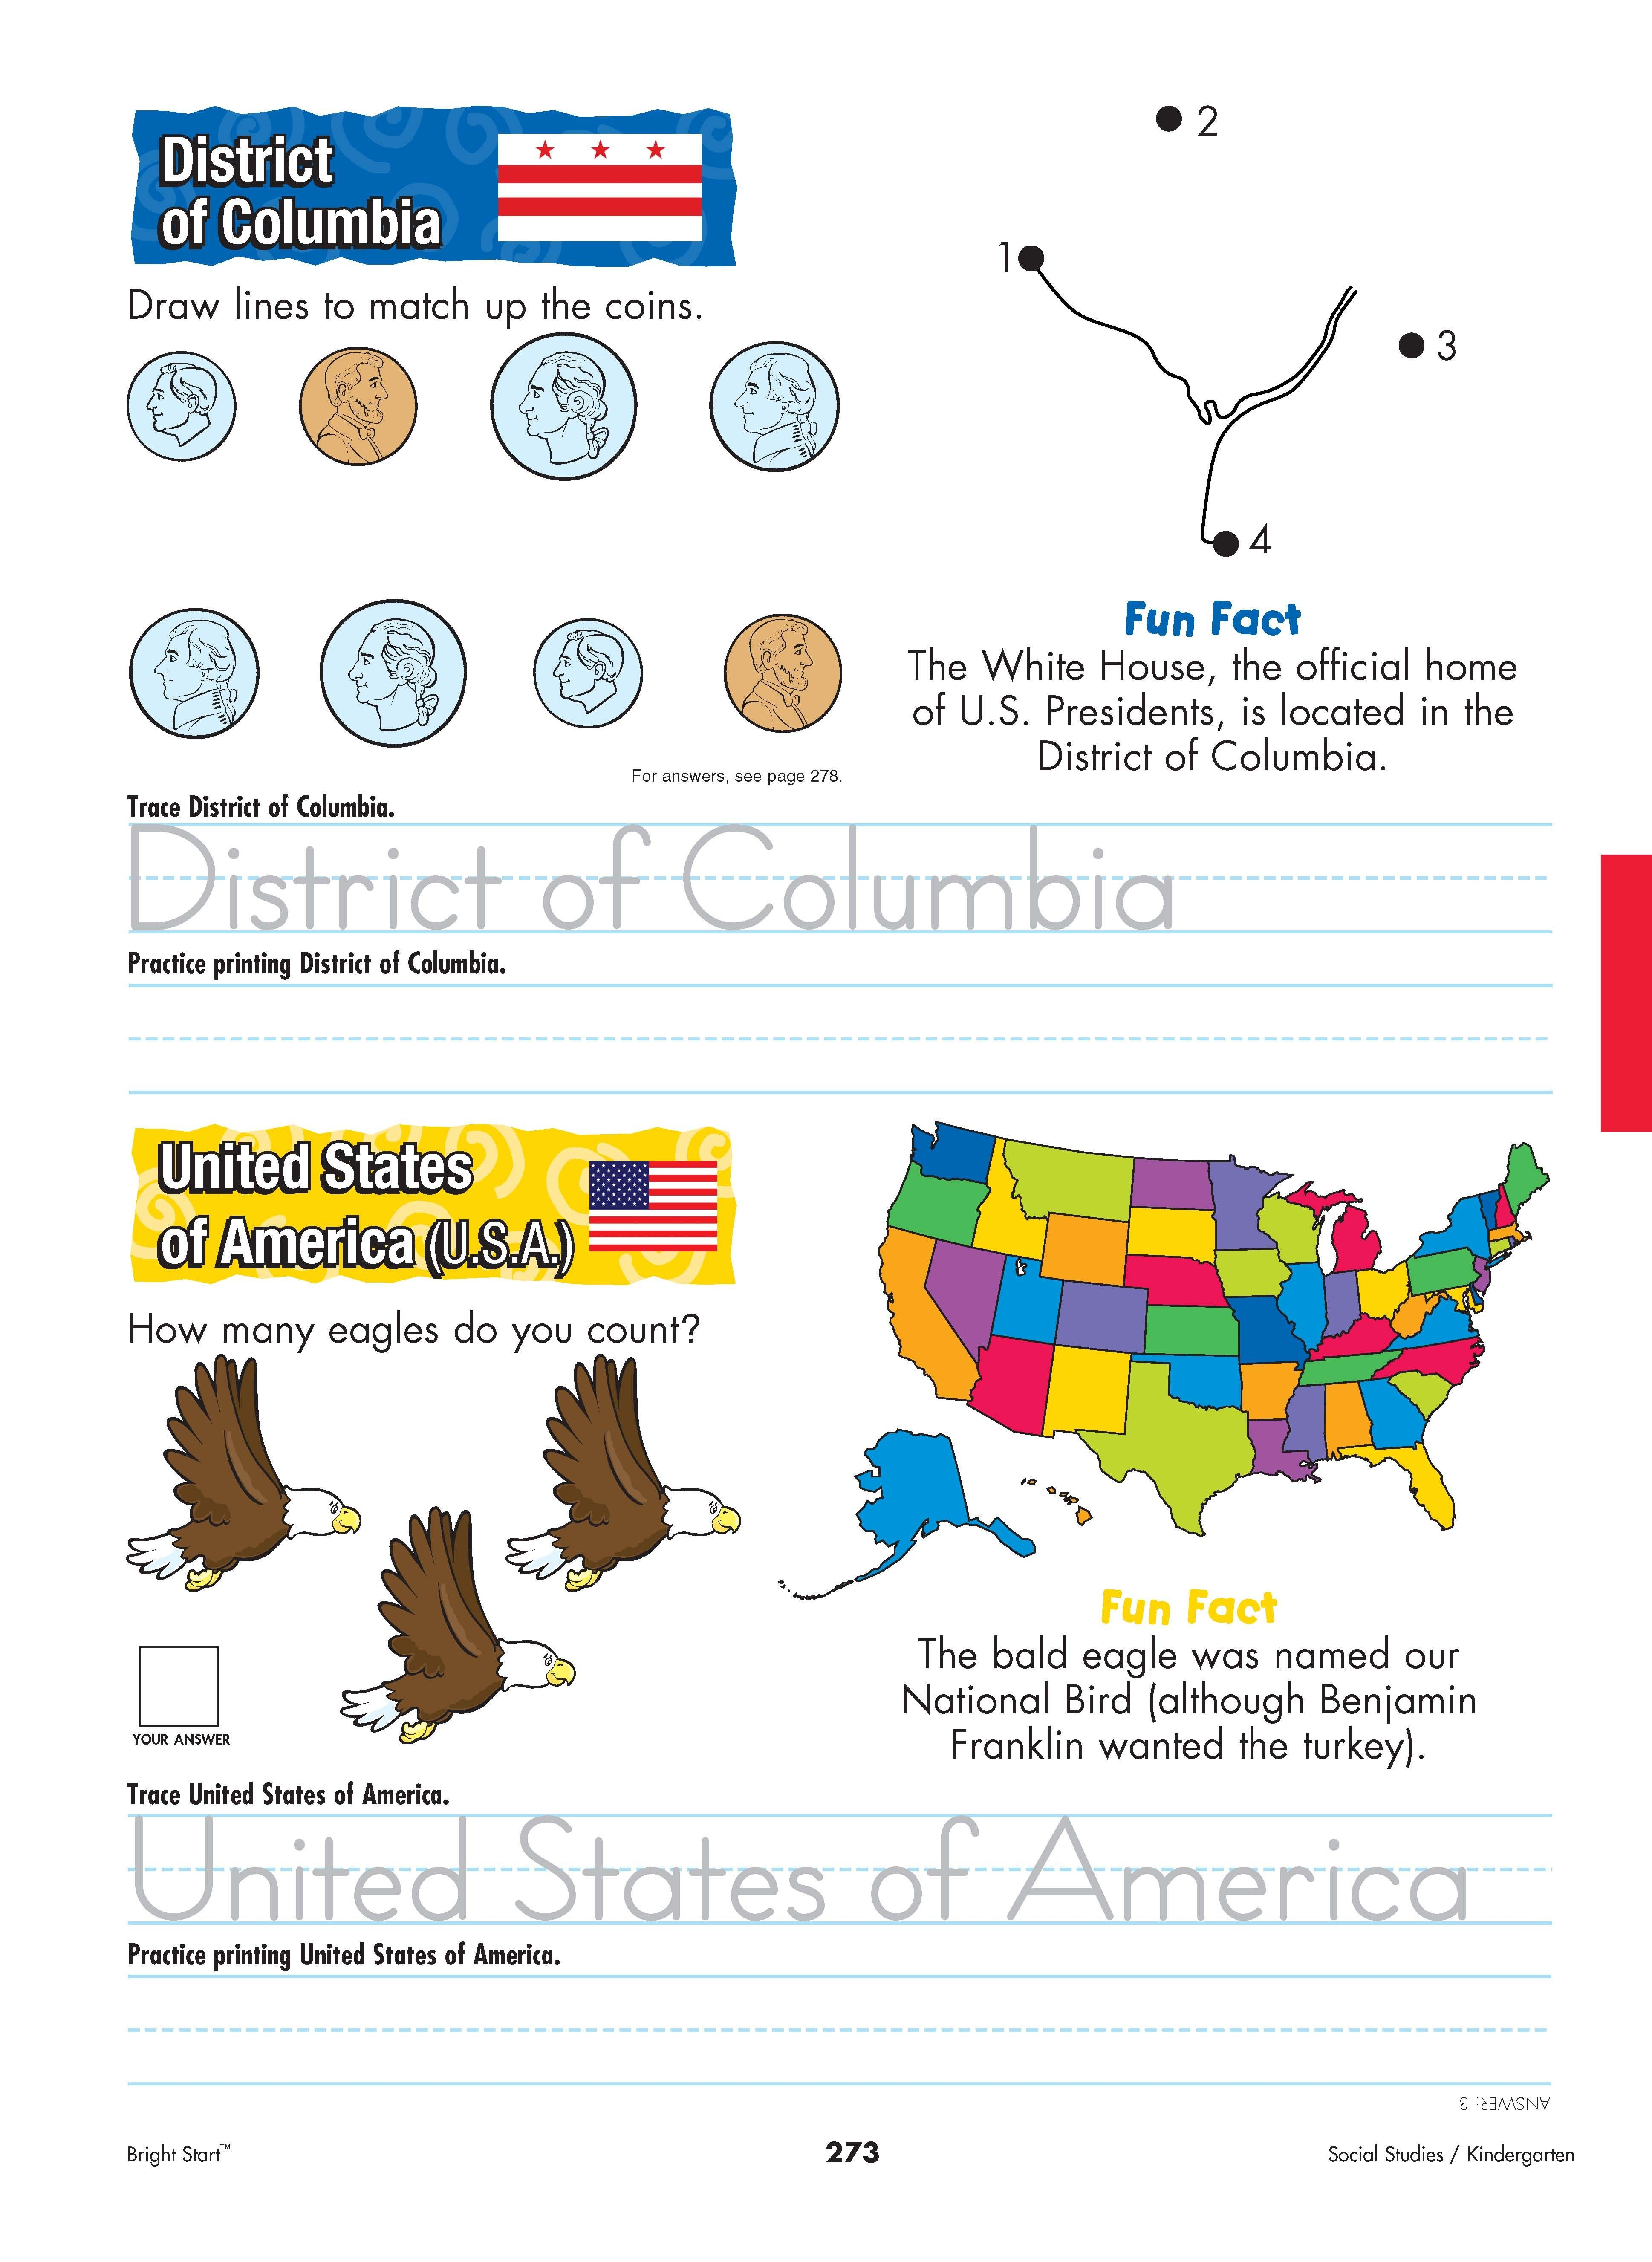 Disctrict Of Columbia And United States Of America Your